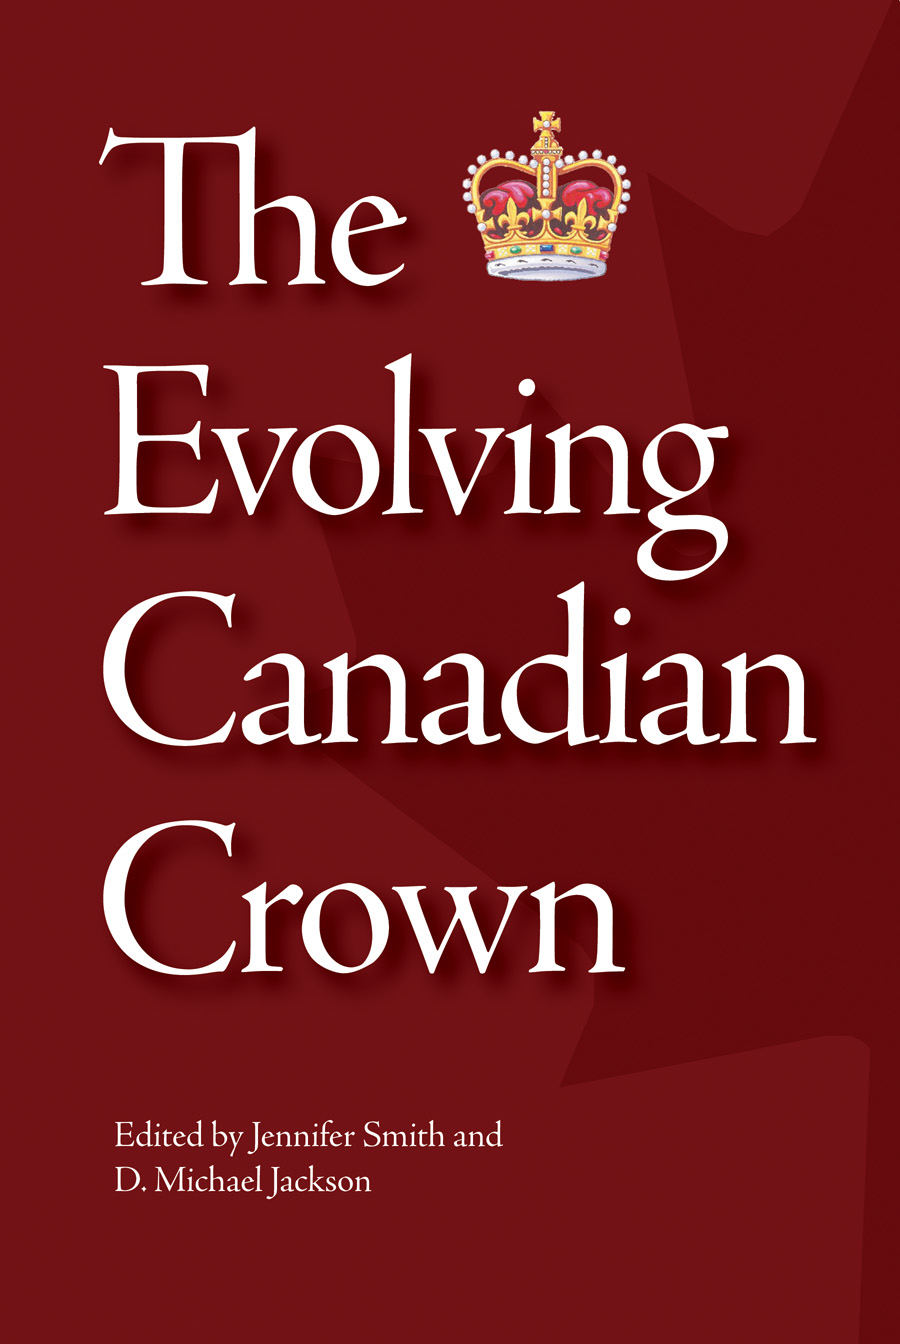 The Evolving Canadian Crown book cover [JPG]